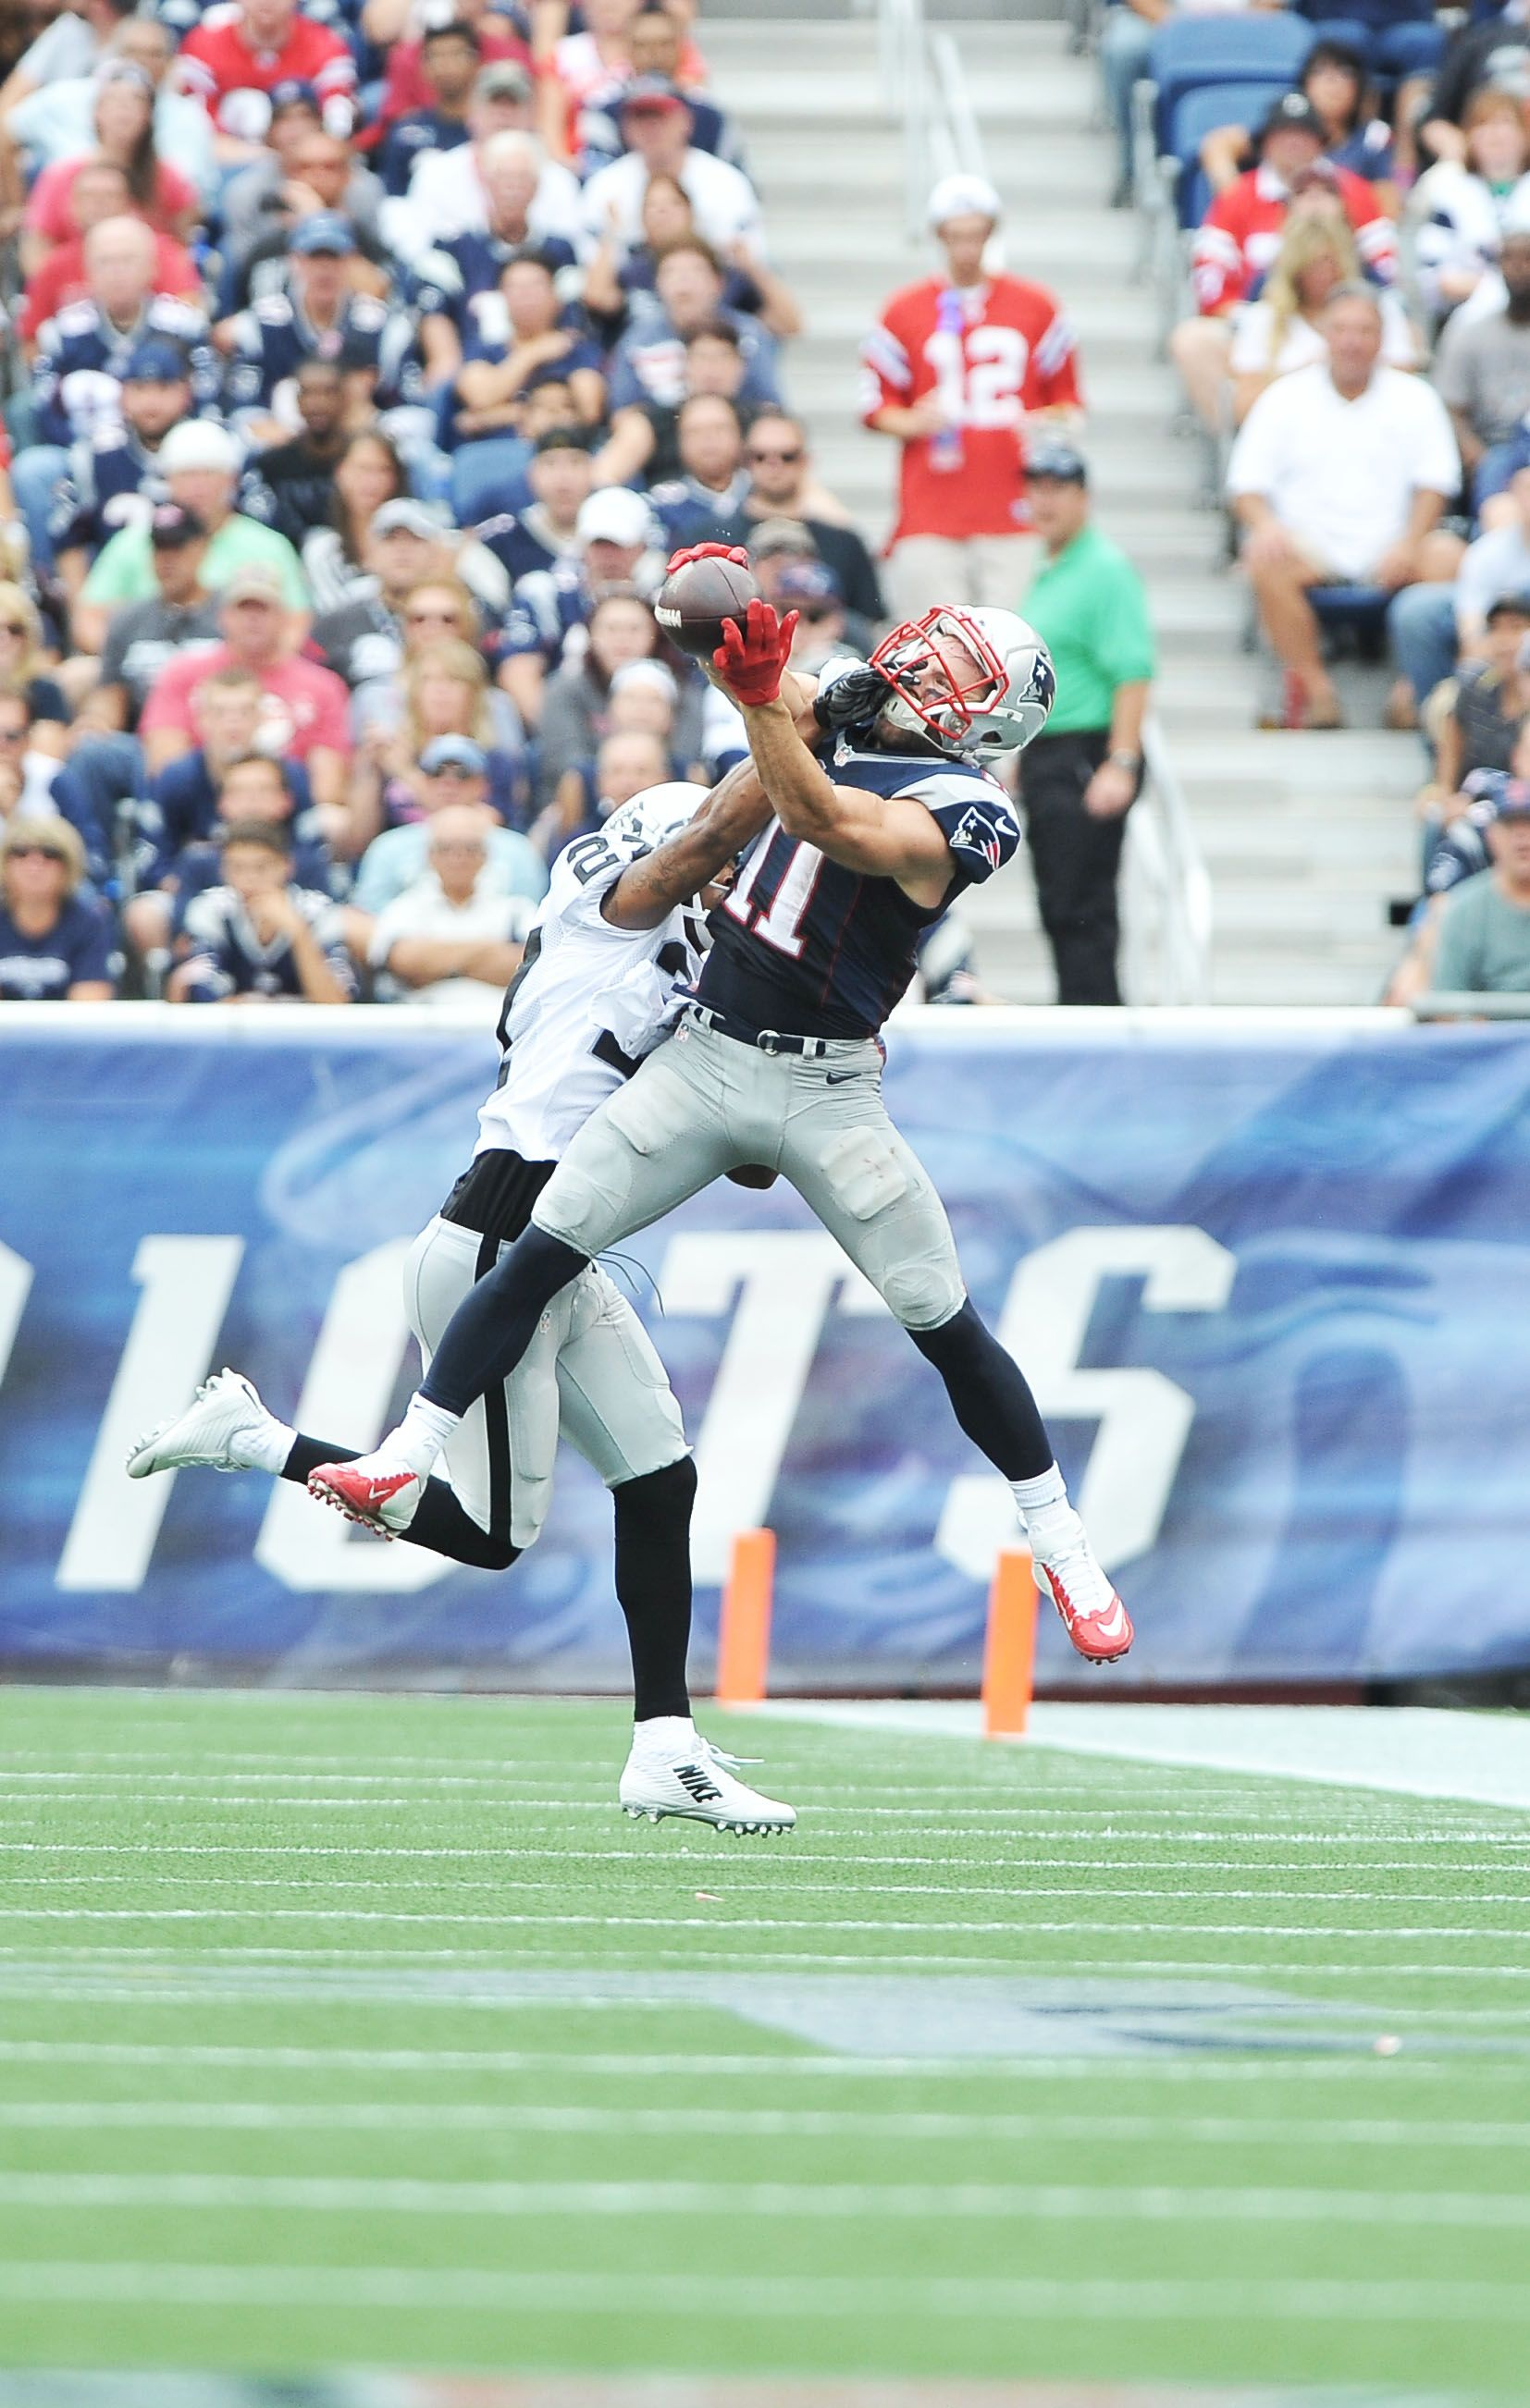 Edelman Caught 10 Passes For 84 Yards Marking His Fourth Regular Season Game With At Least 10 R Patriots Football New England Patriots Patriots Julian Edelman